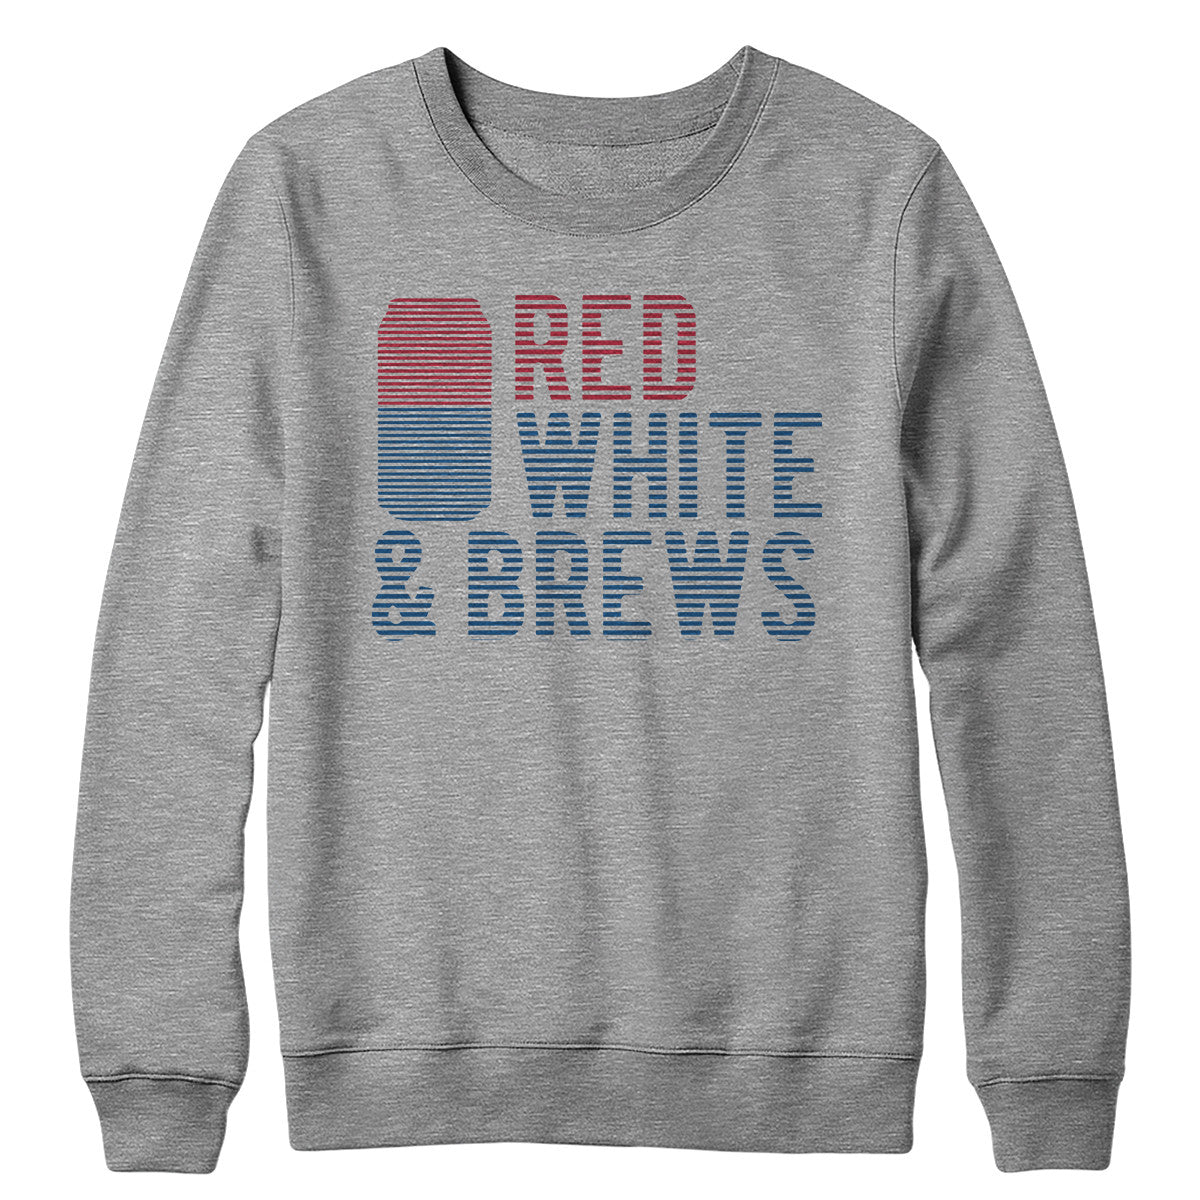 Red White and Brews Crewneck